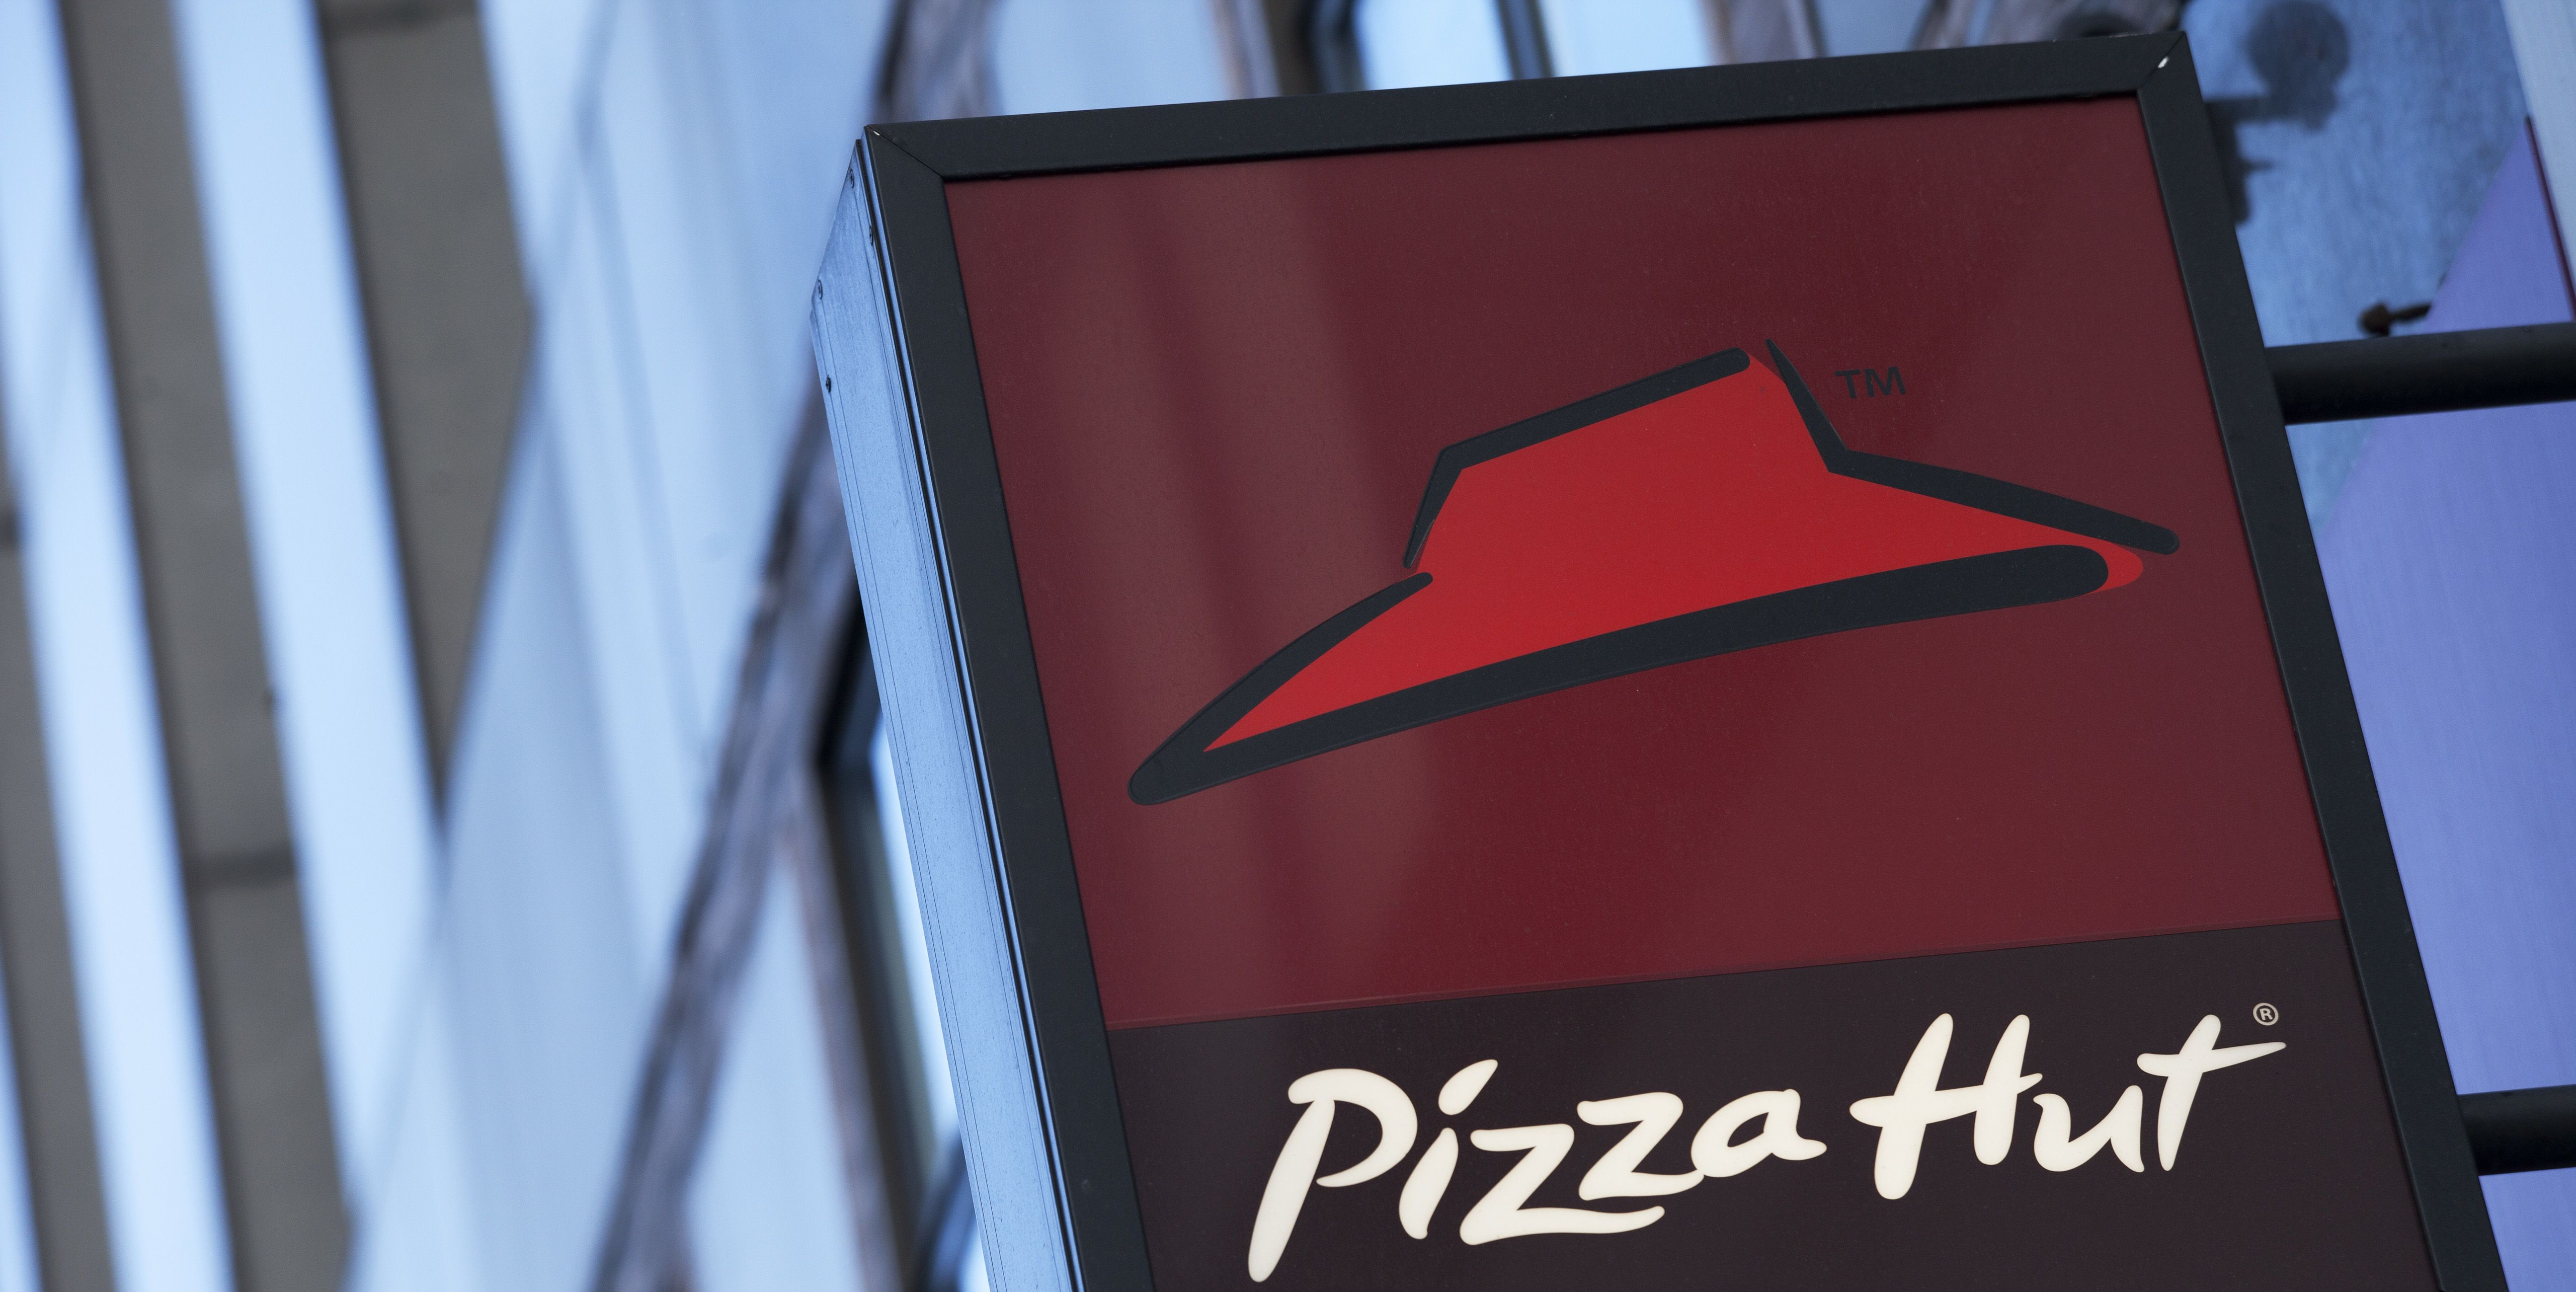 Pizza Hut Is Hiring 30,000 More Employees